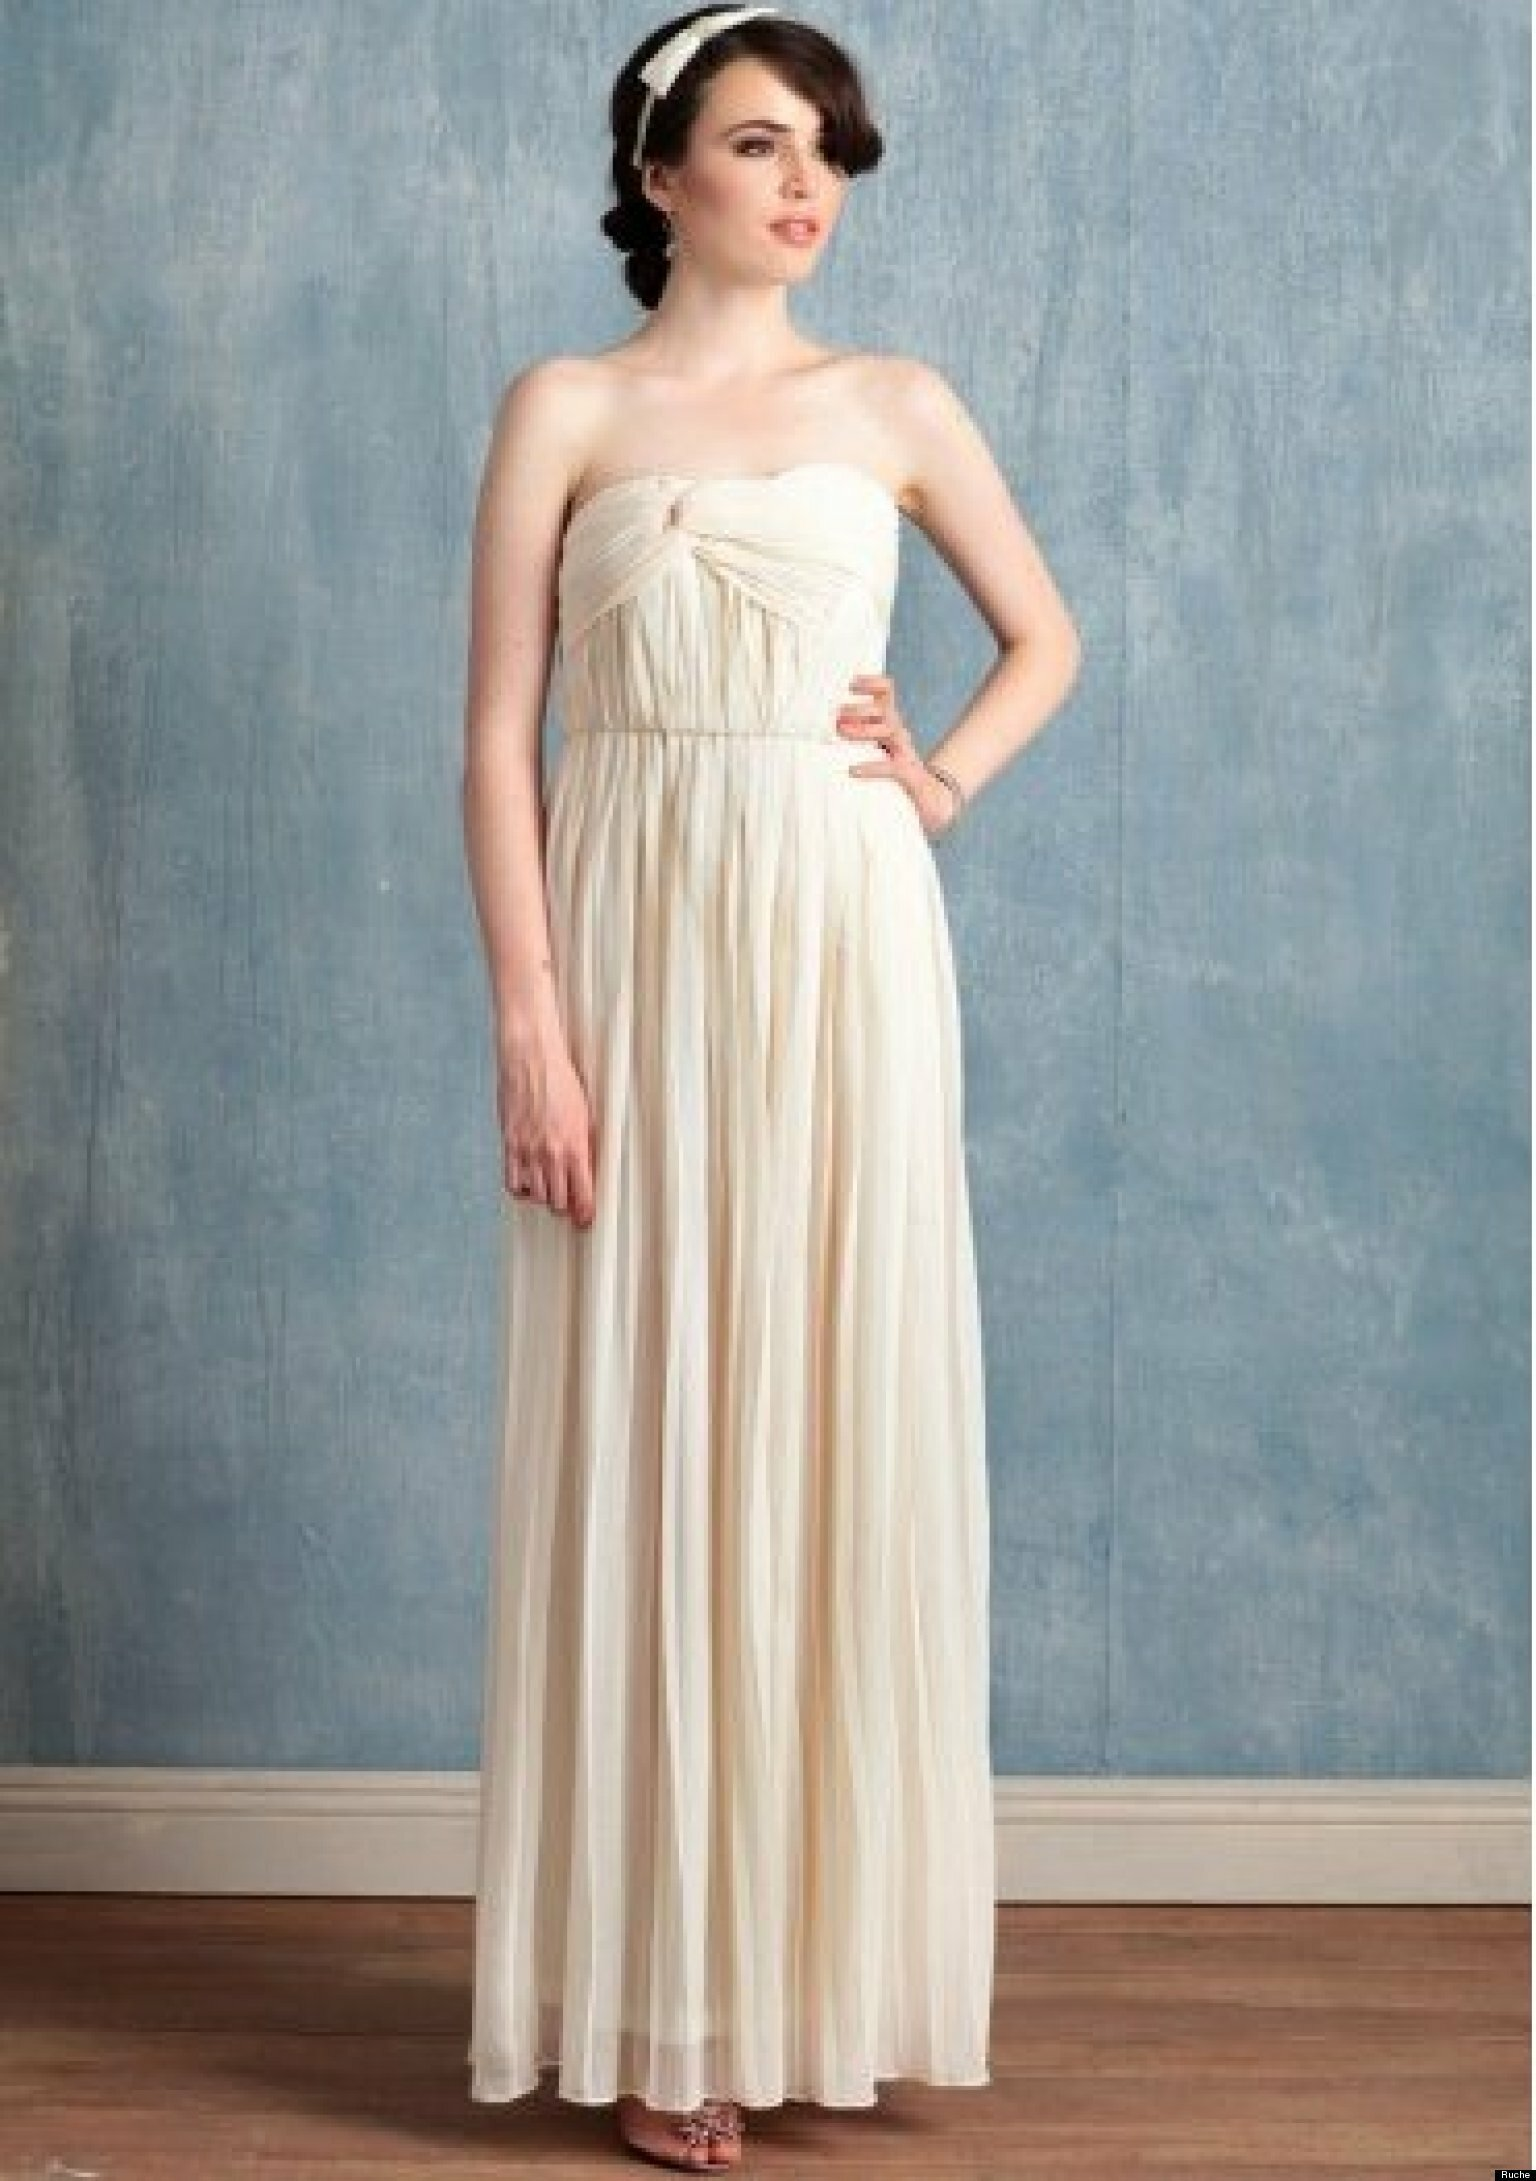 Elegant Wedding Dresses for Older Brides | Wedding